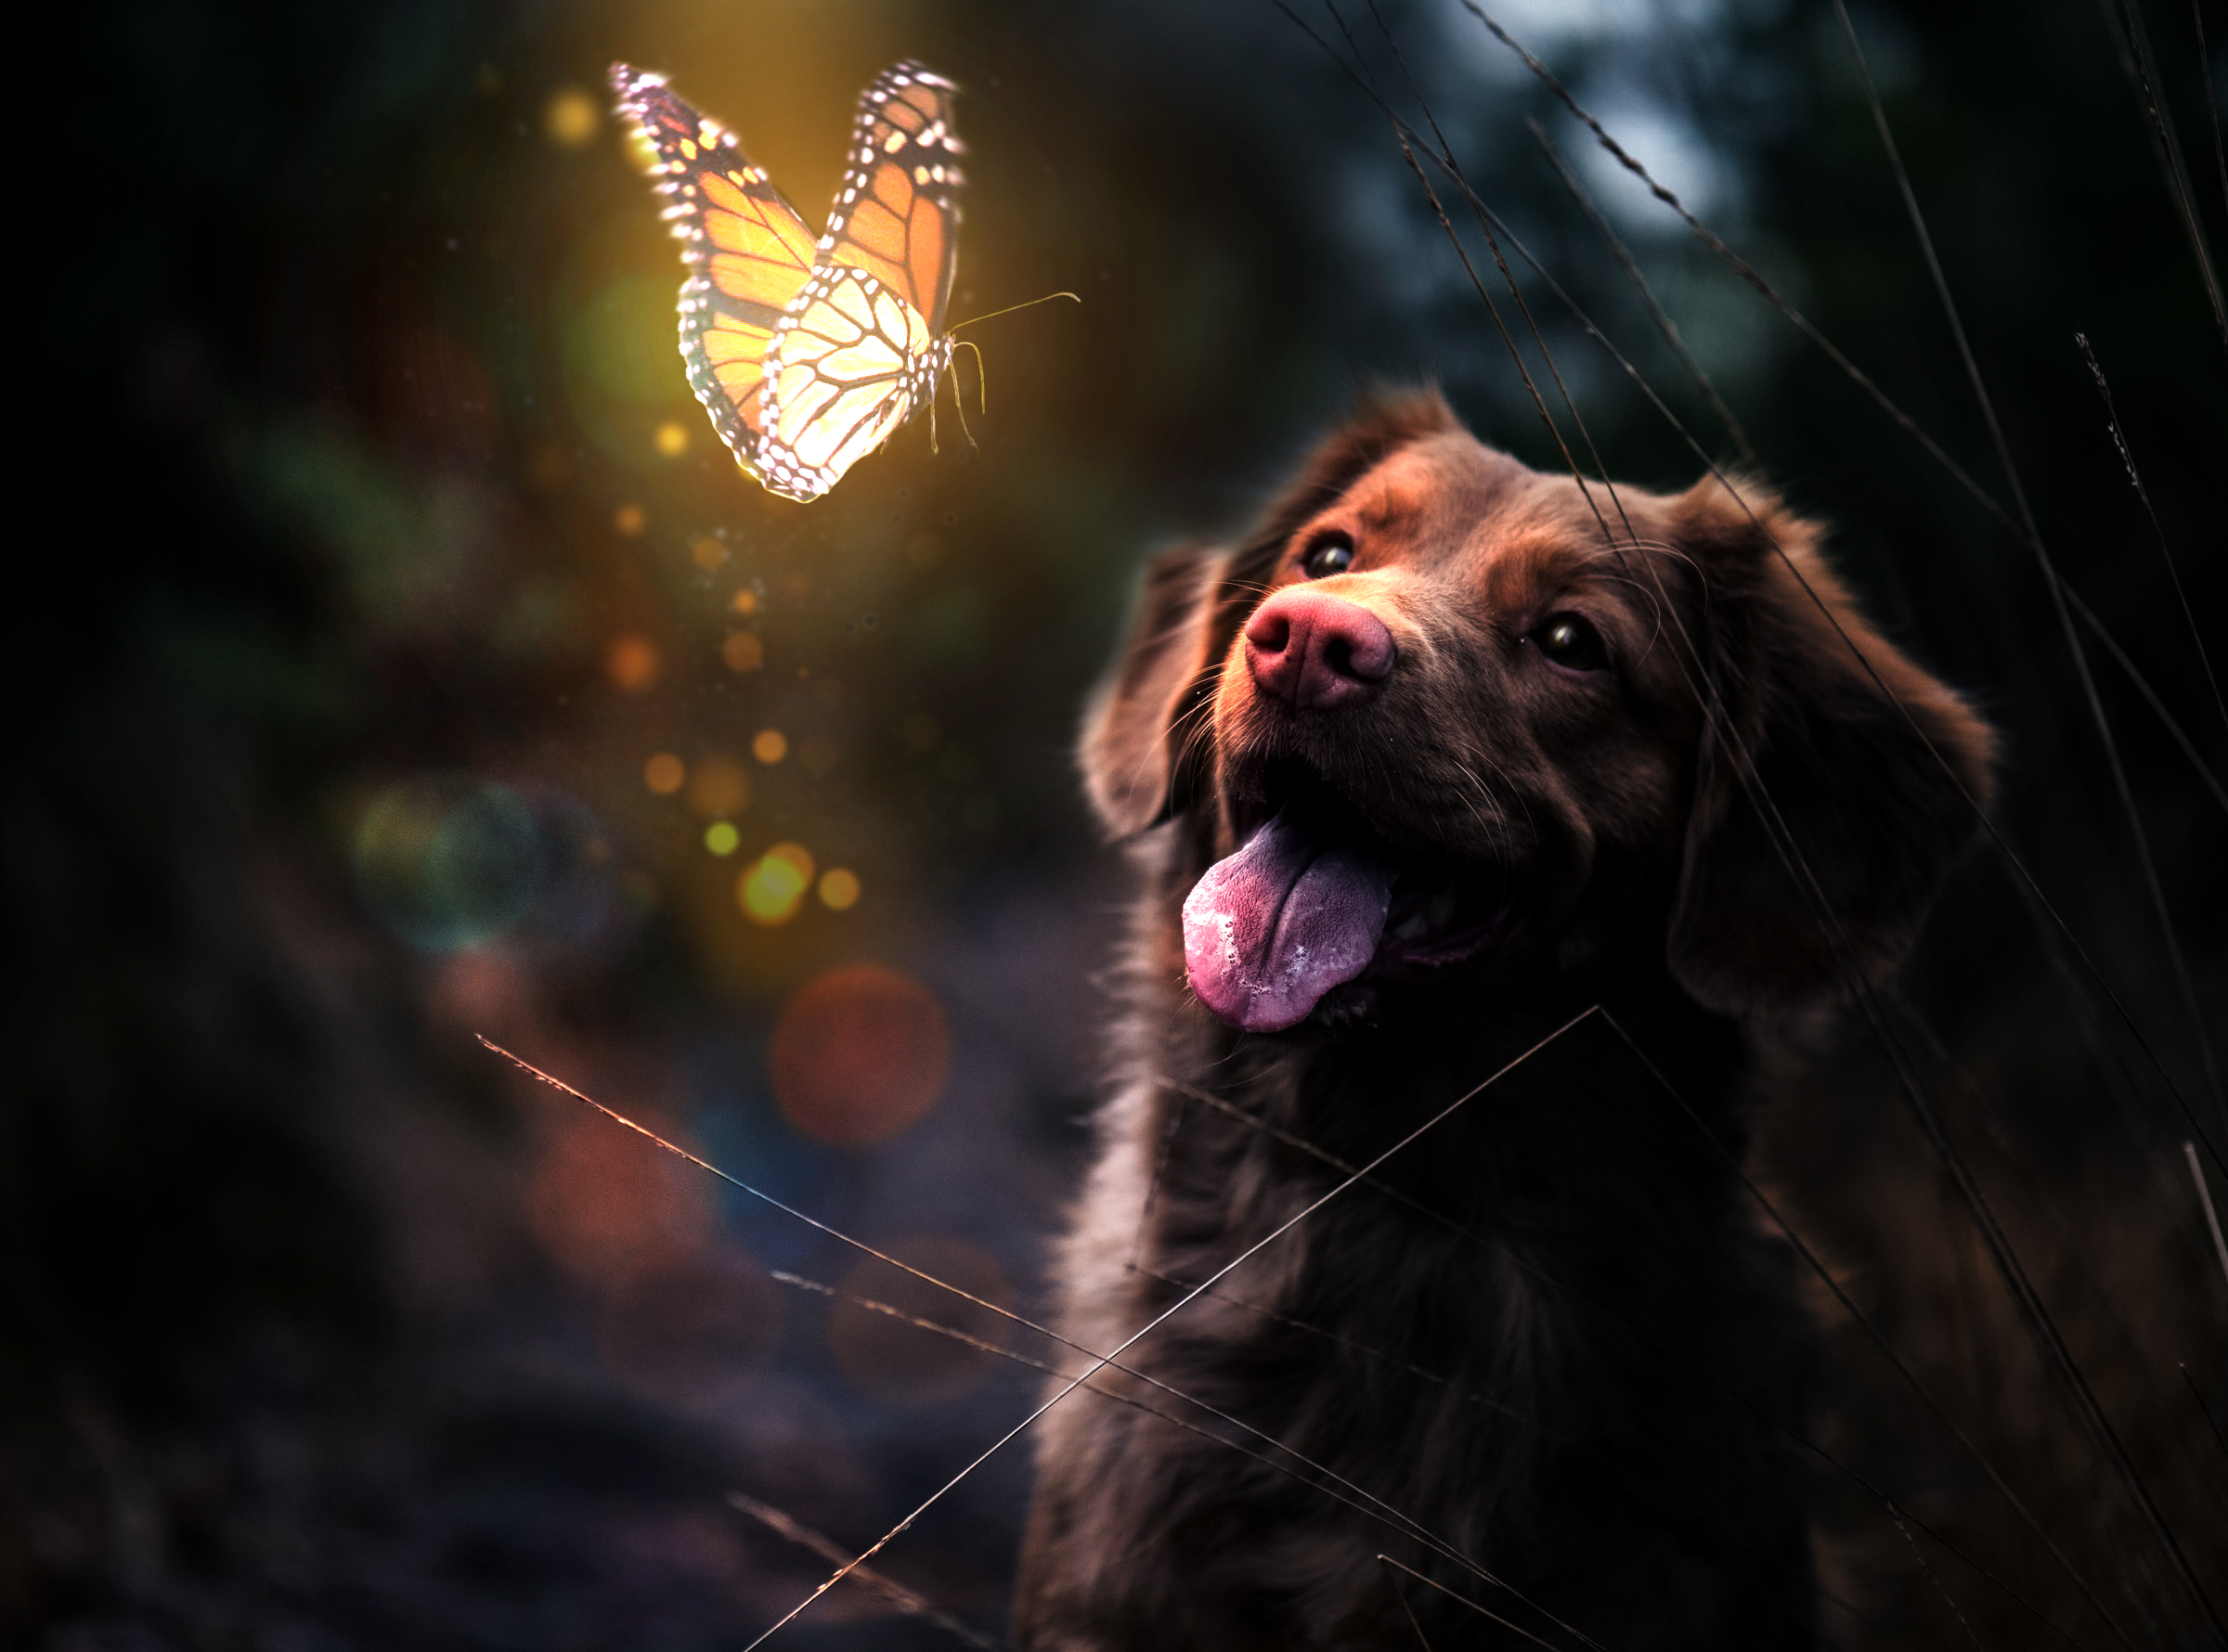 glowing-butterfly-and-dog-3-1